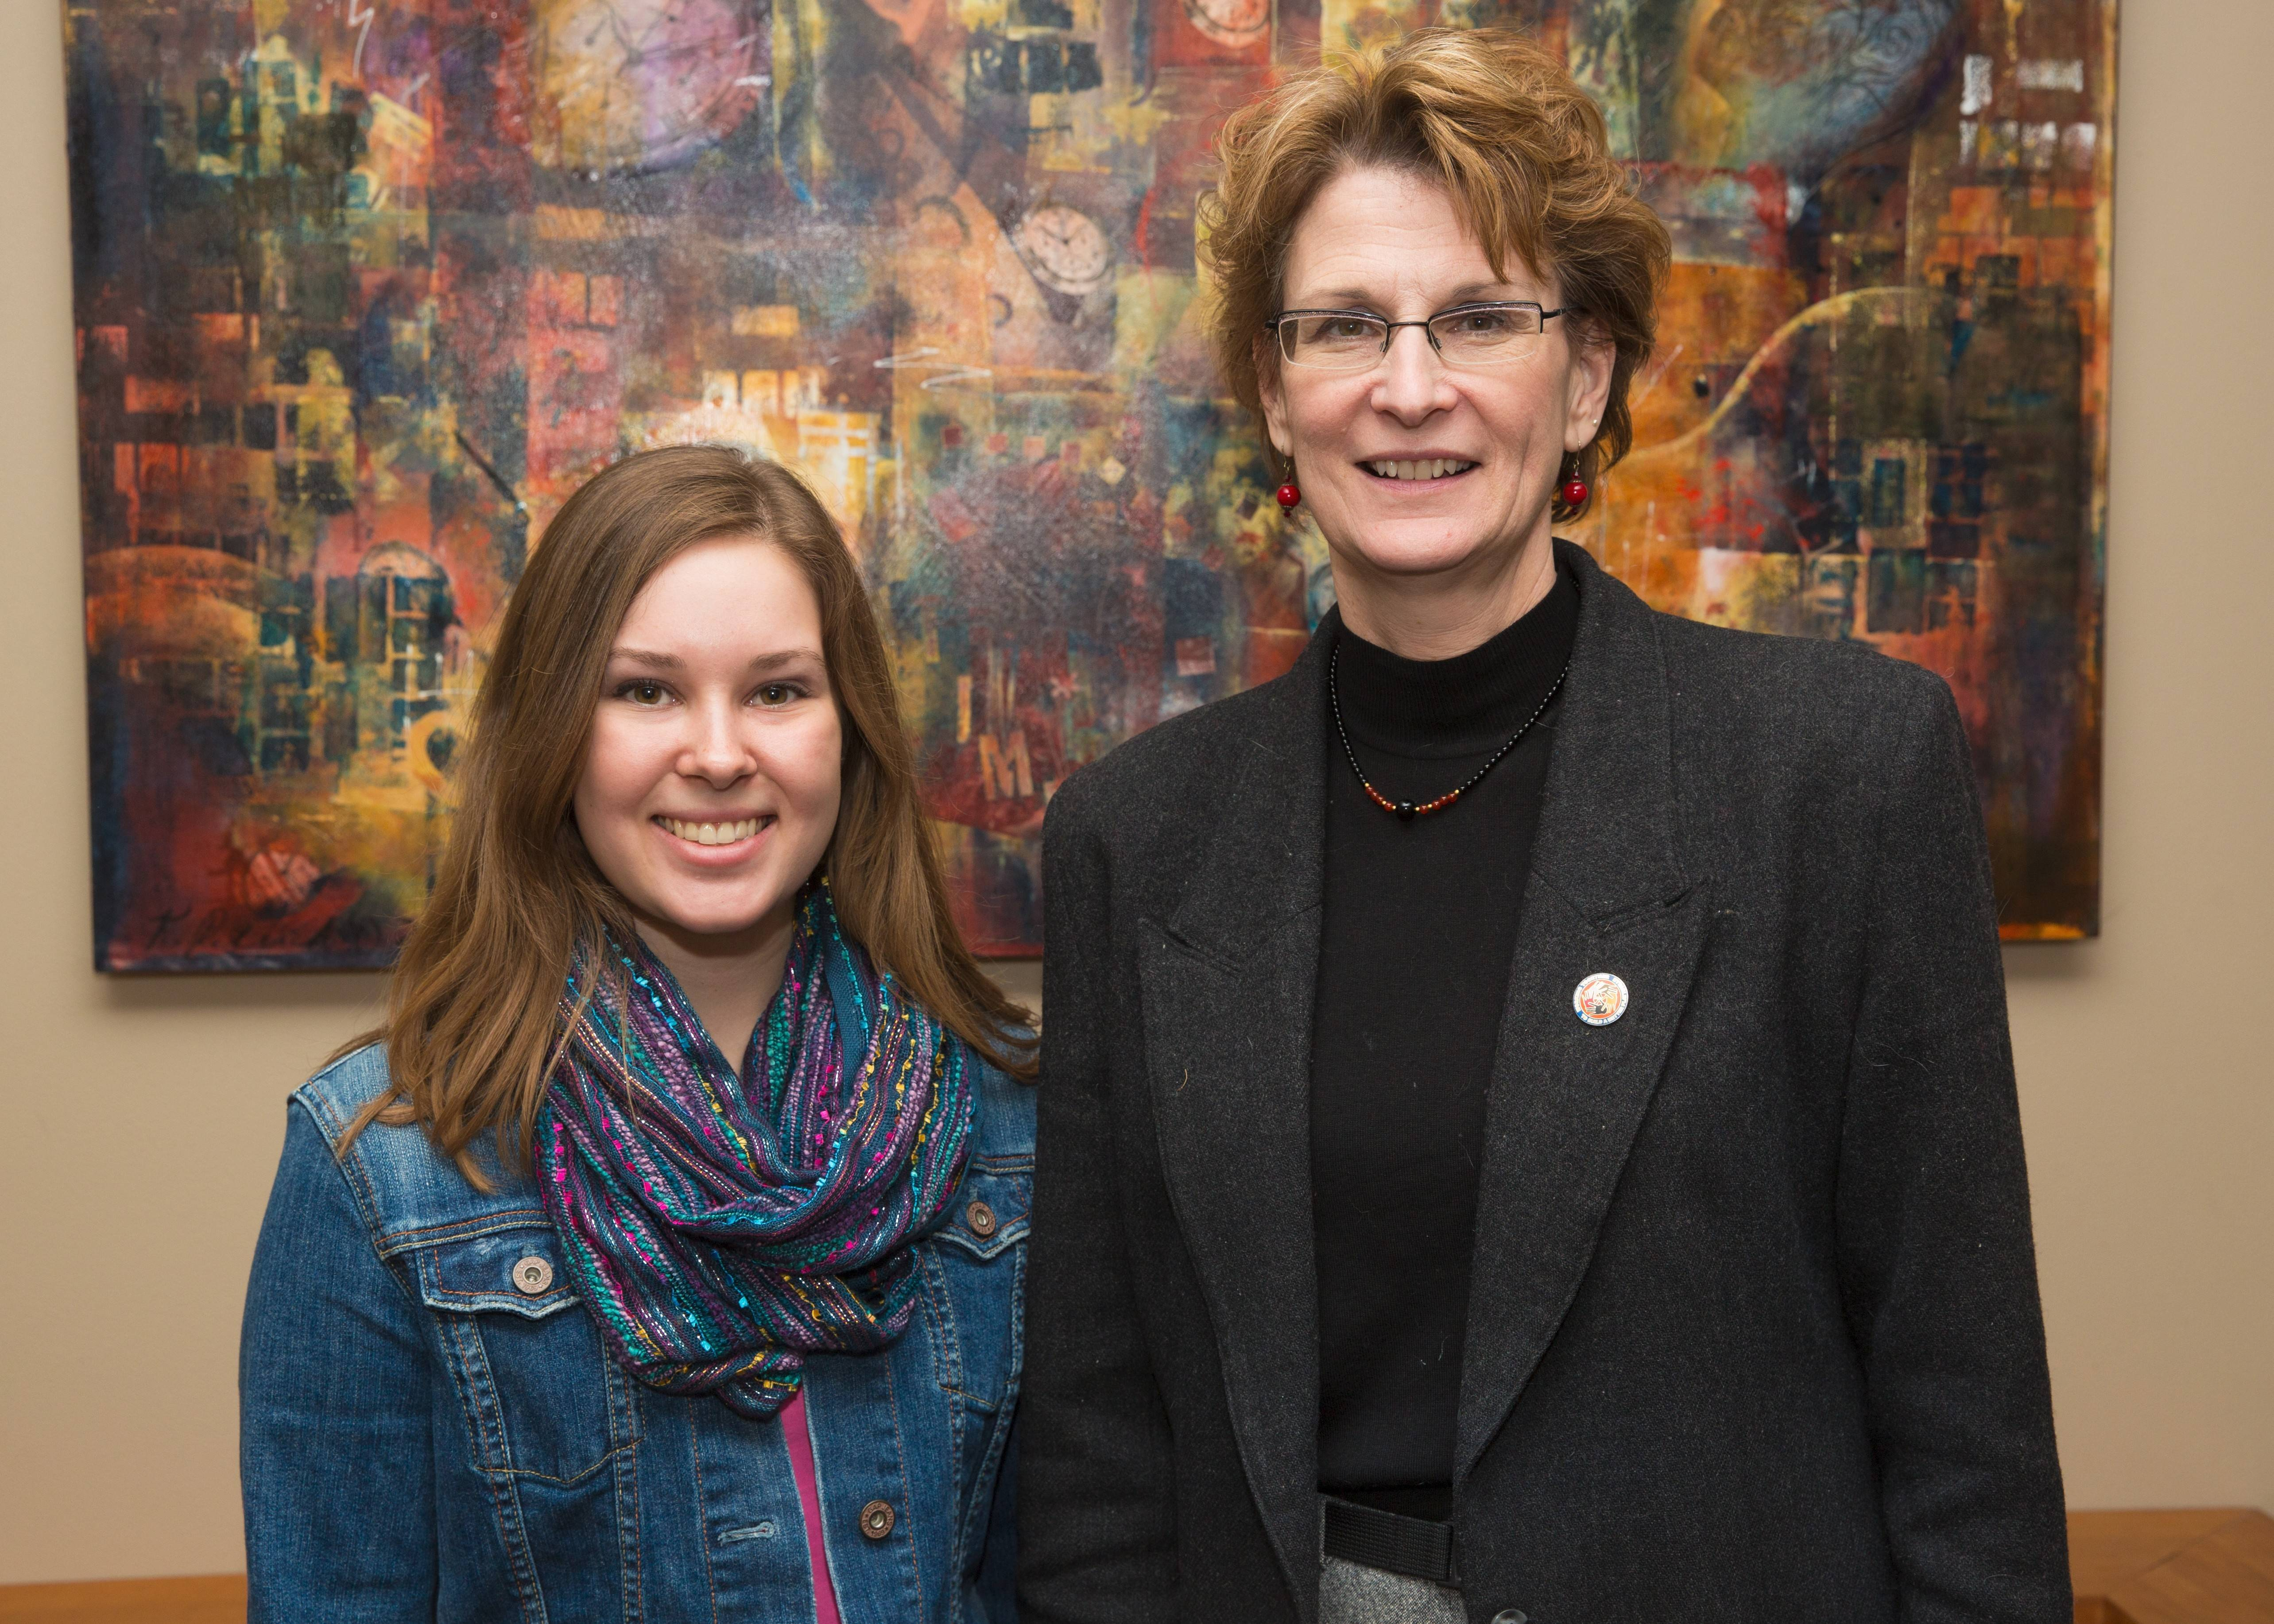 Spring 2014 essay contest winner Connie Spyropoulos of Bartlett, left, with Dr. Mittie Nimocks Den Herder, UW-Platteville's provost and vice chancellor for Academic Affairs.